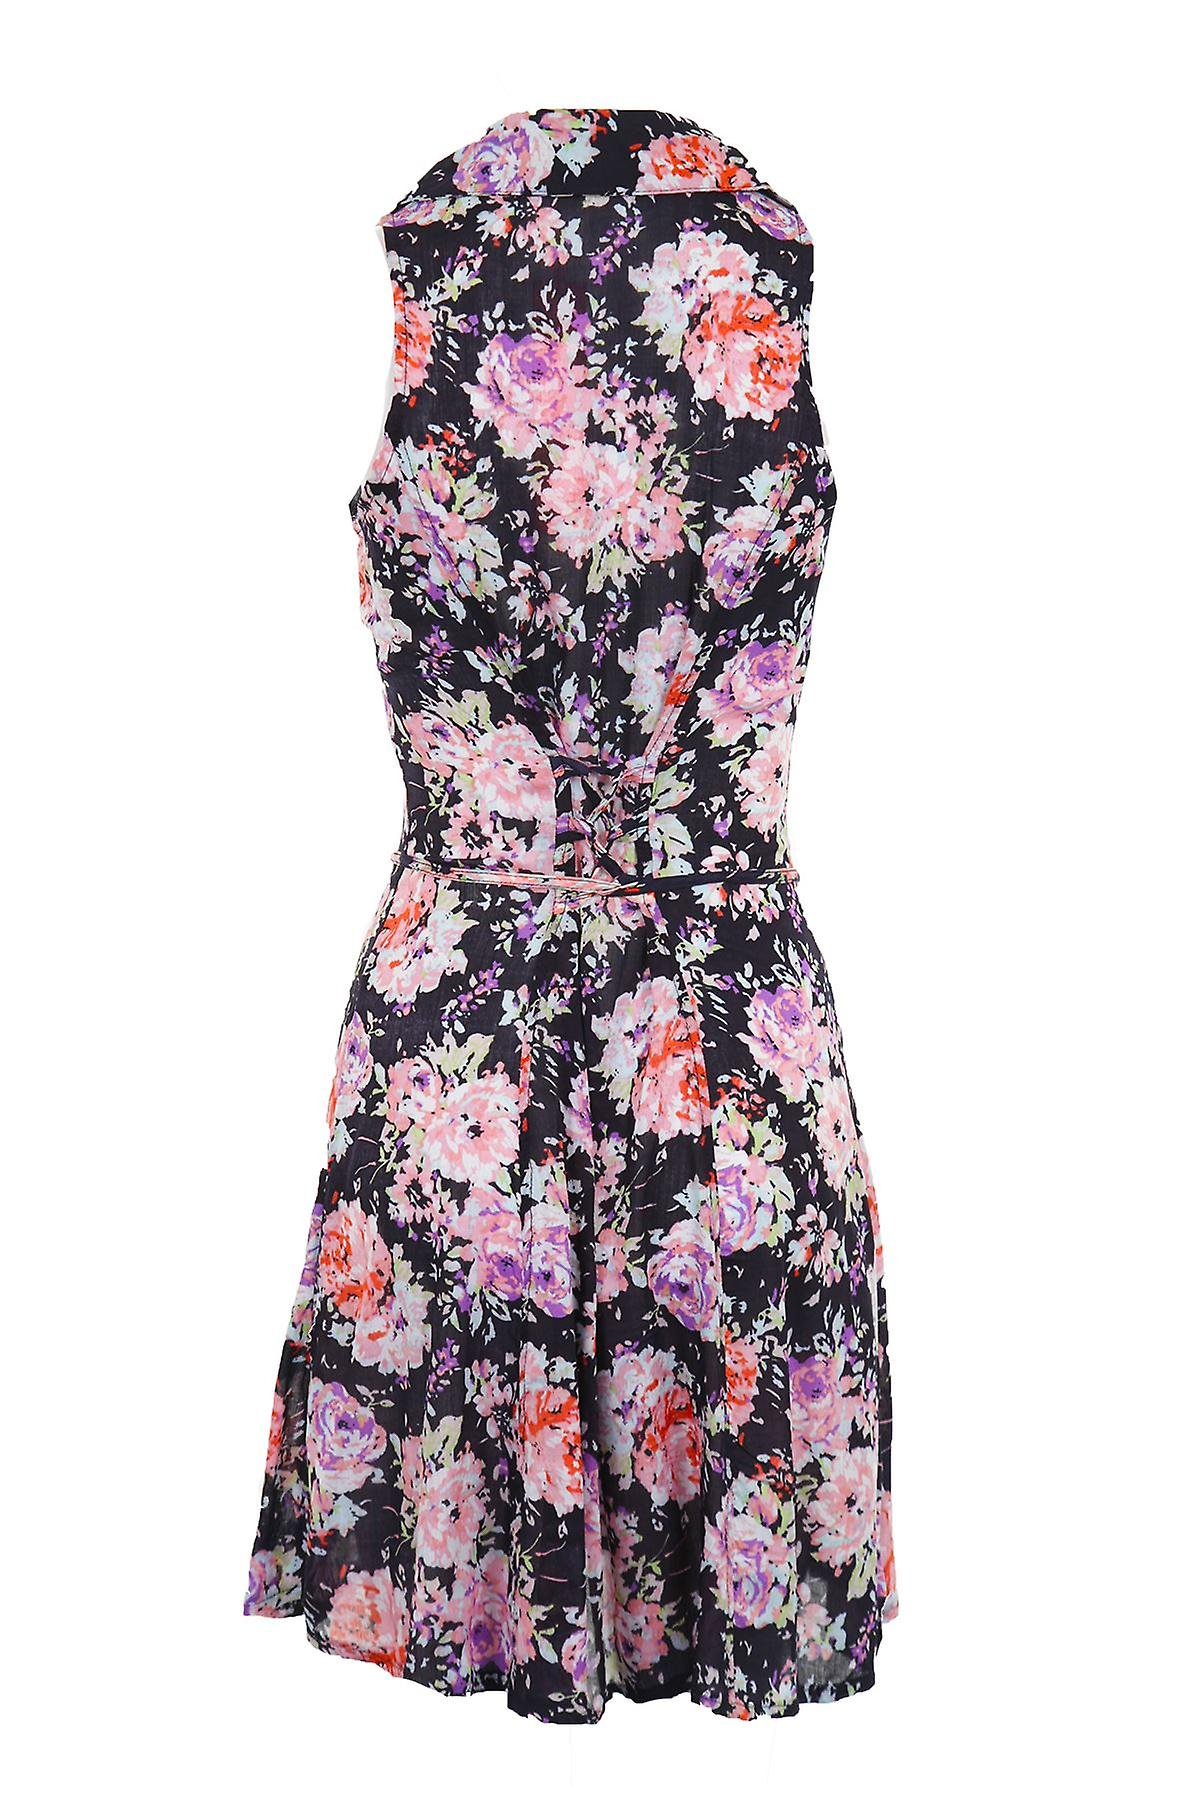 Ladies Sleeveless Rose Floral Summer Tie Back Women's Shirt Dress